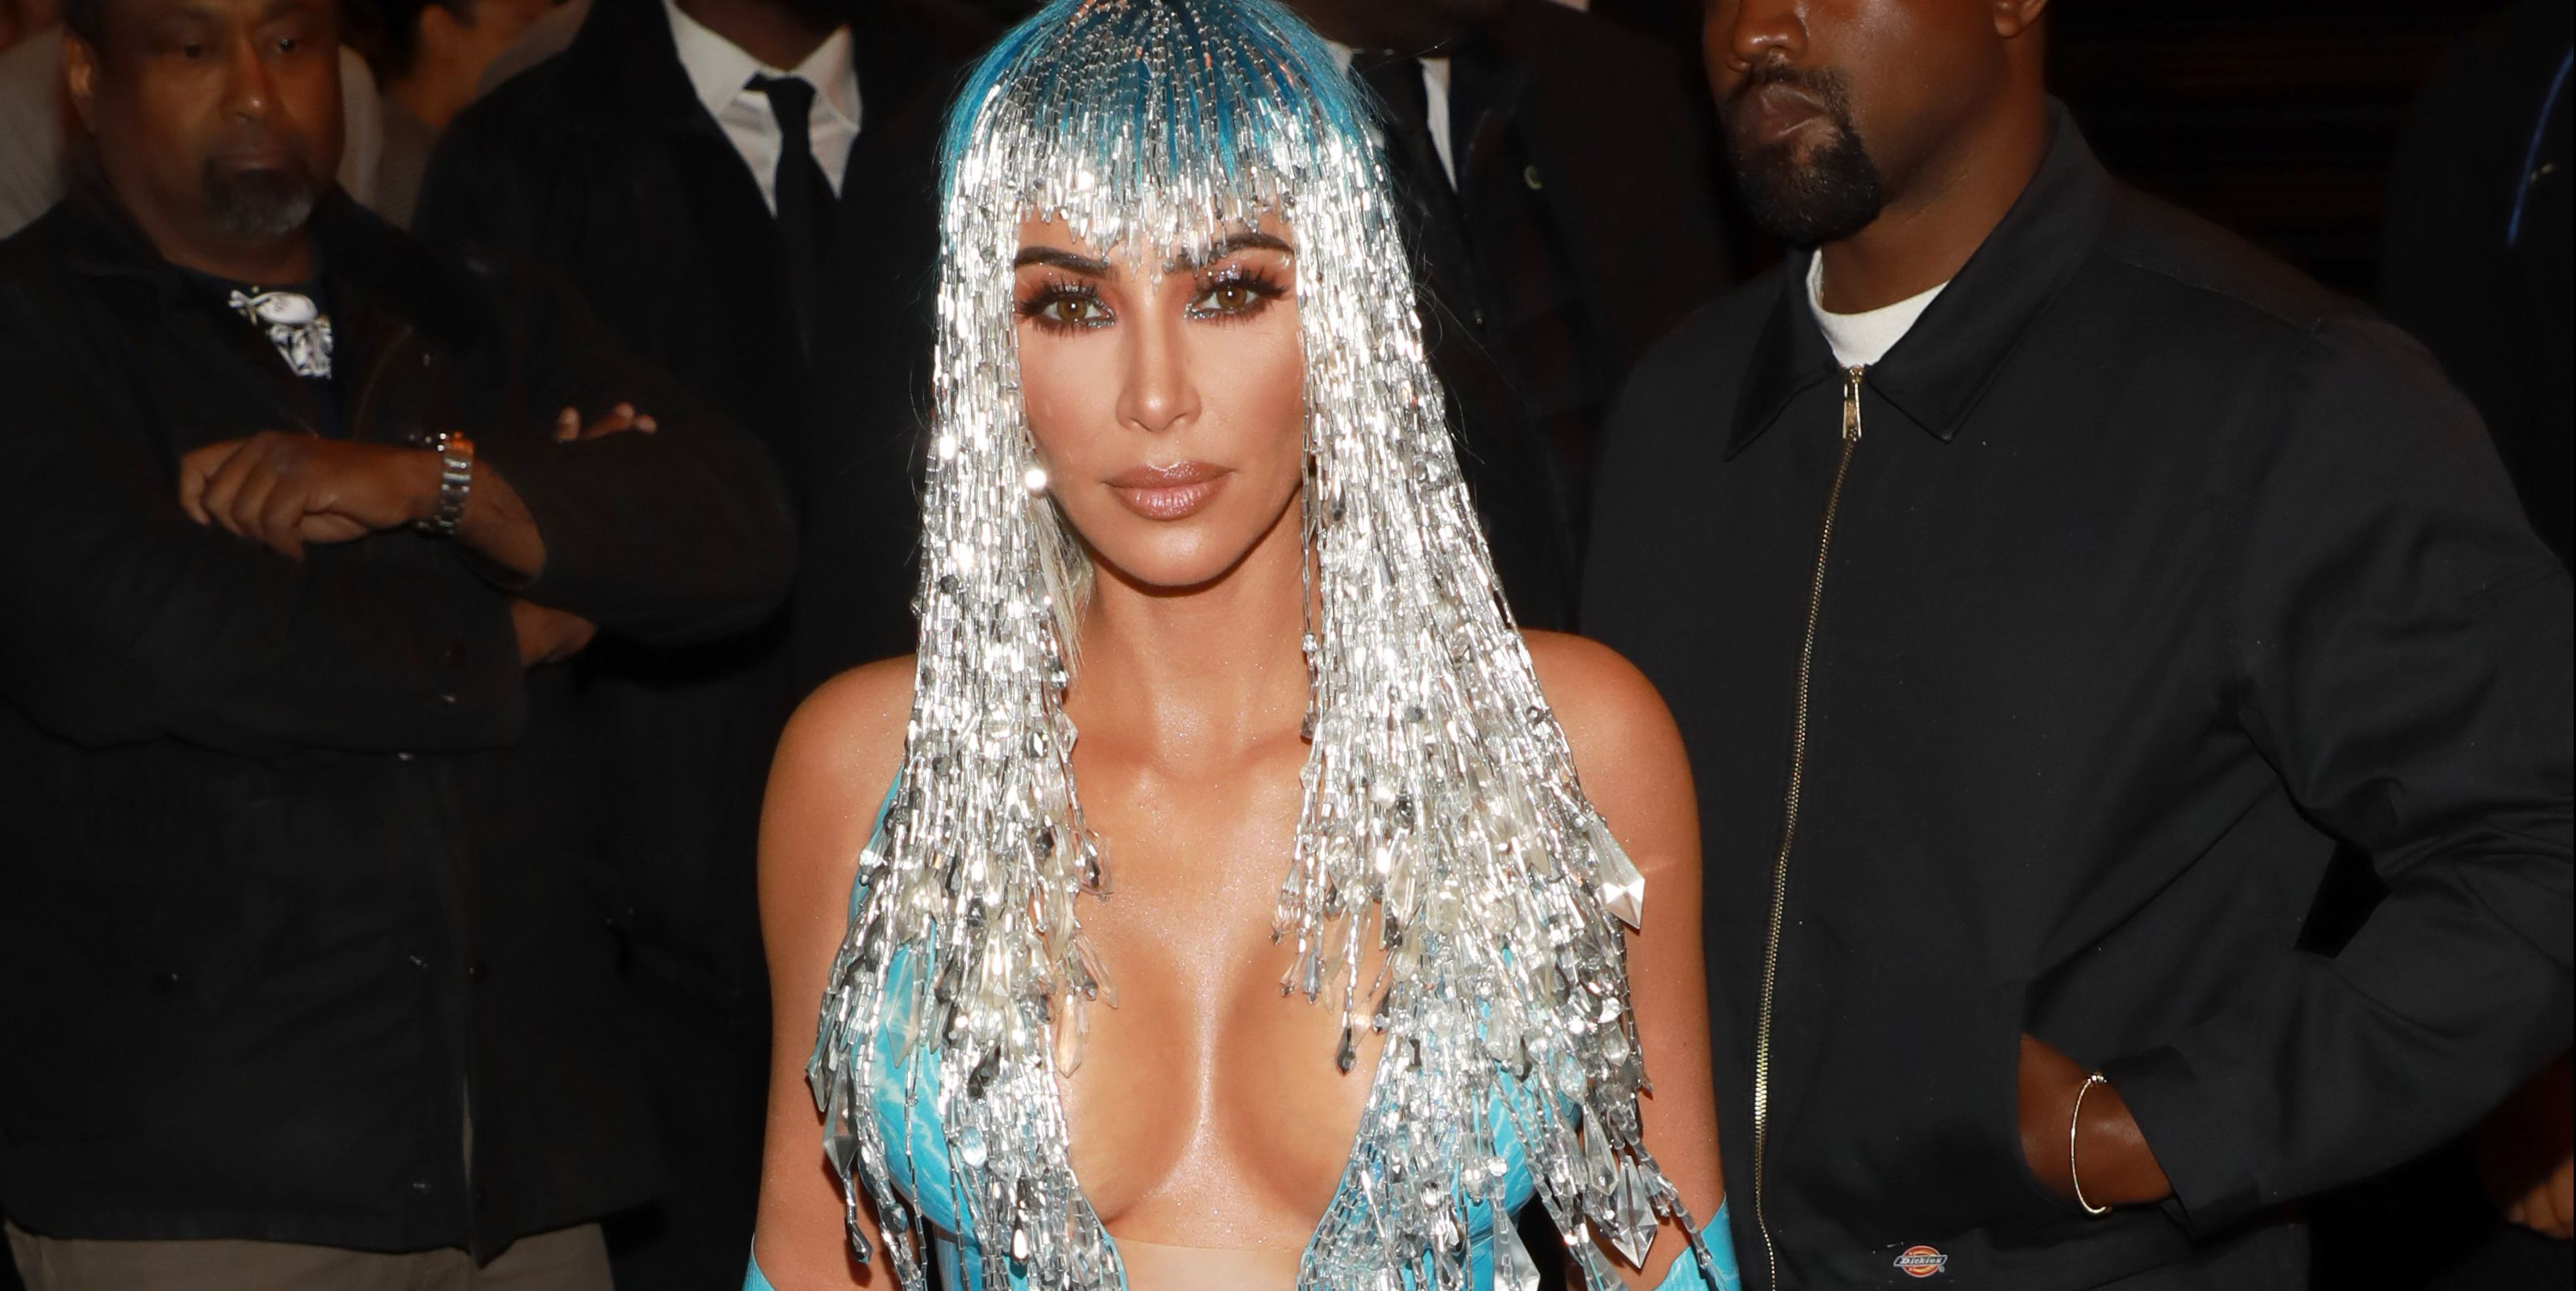 Kim Kardashian and Kylie Jenner's Met Gala After-Party Looks Were Absolutely Wild